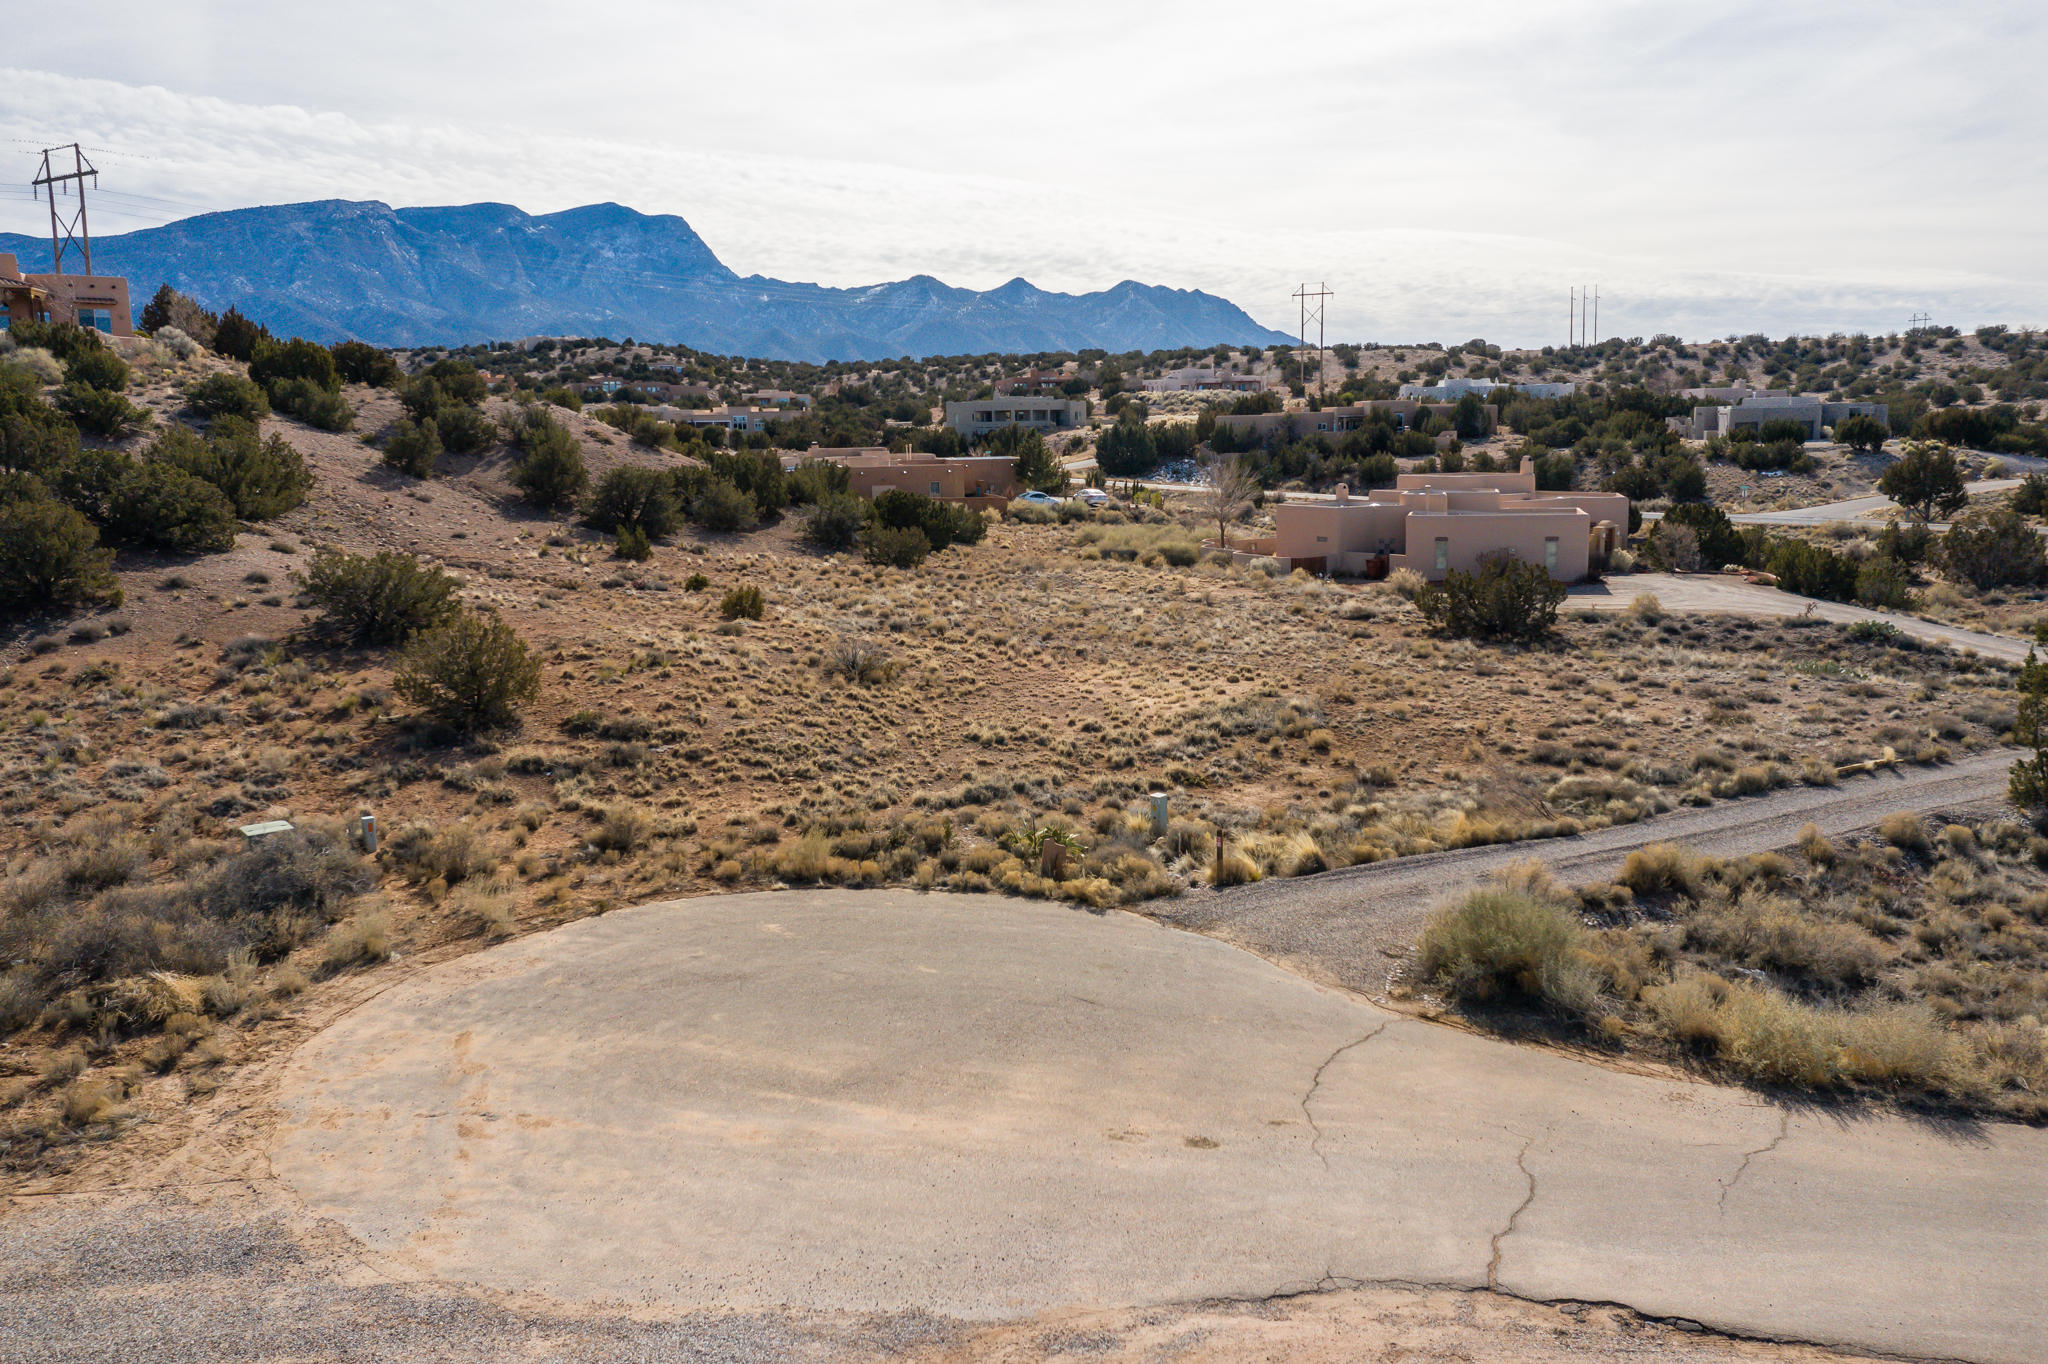 9 ARIEL Court, Placitas, NM 87043 - Placitas, NM real estate listing